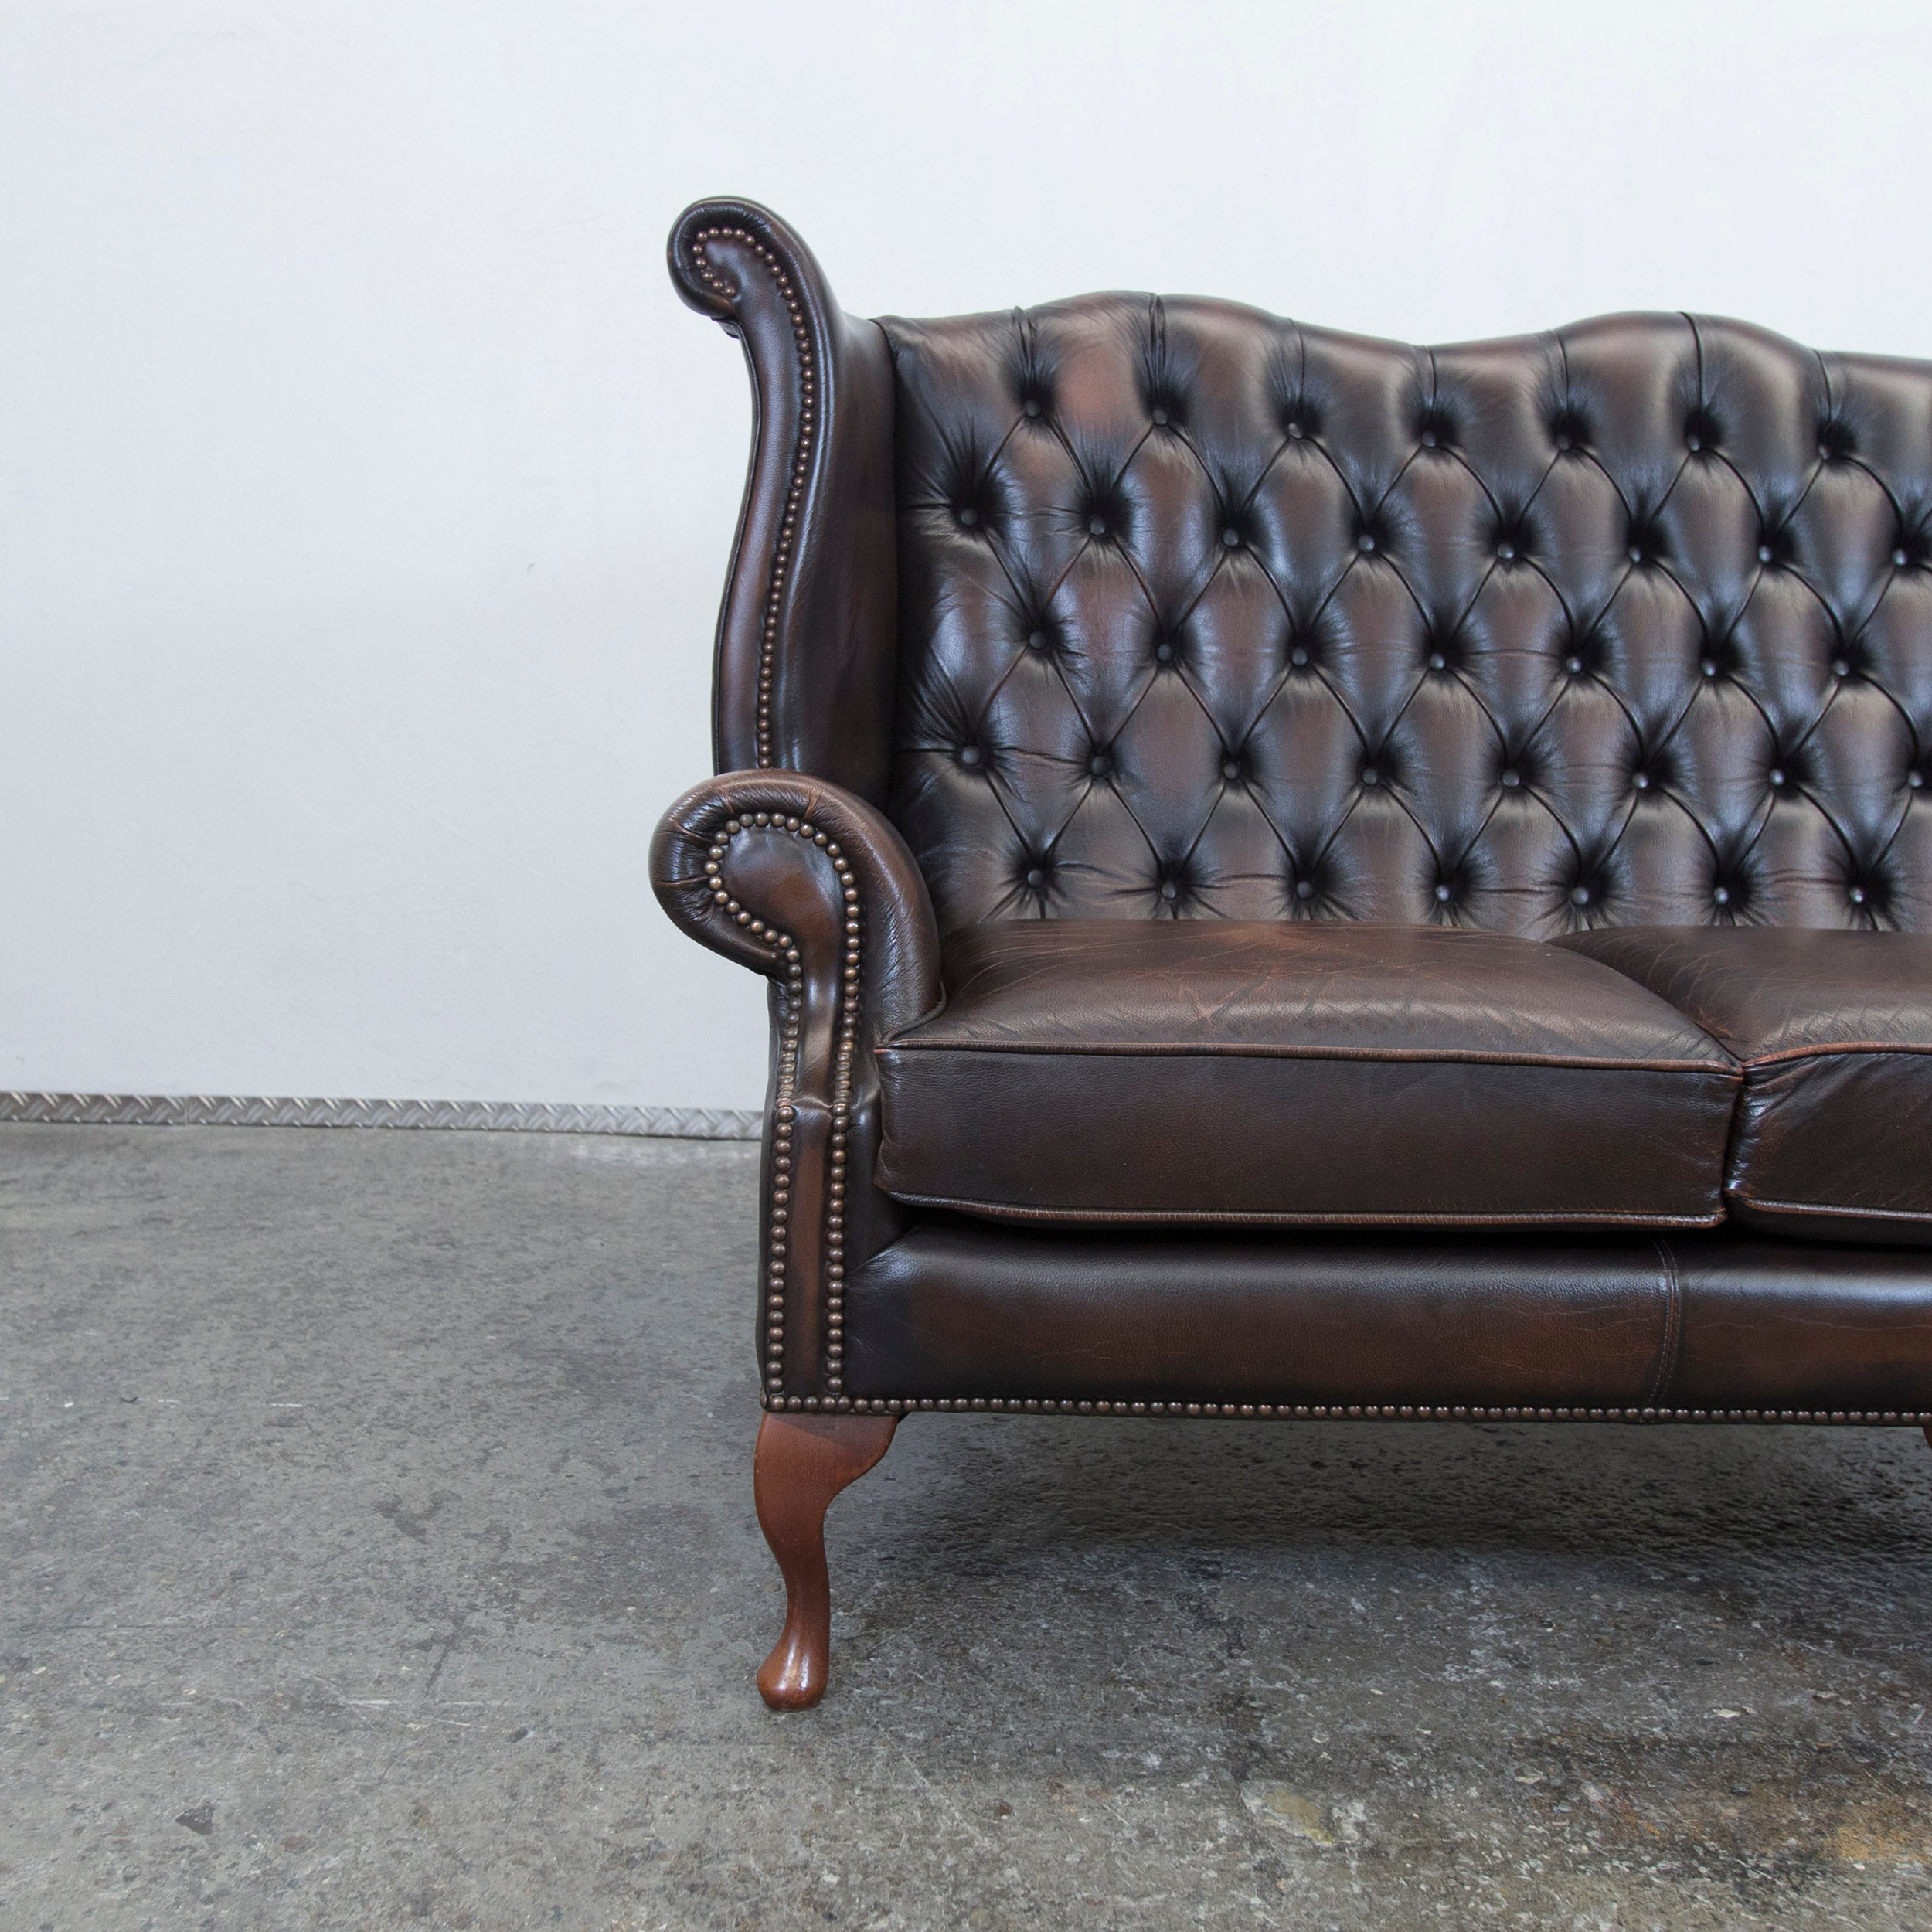 Einsitzer Sofa Centurion Chesterfield Leather Sofa Brown Queen Anne Vintage Retro Three Seat